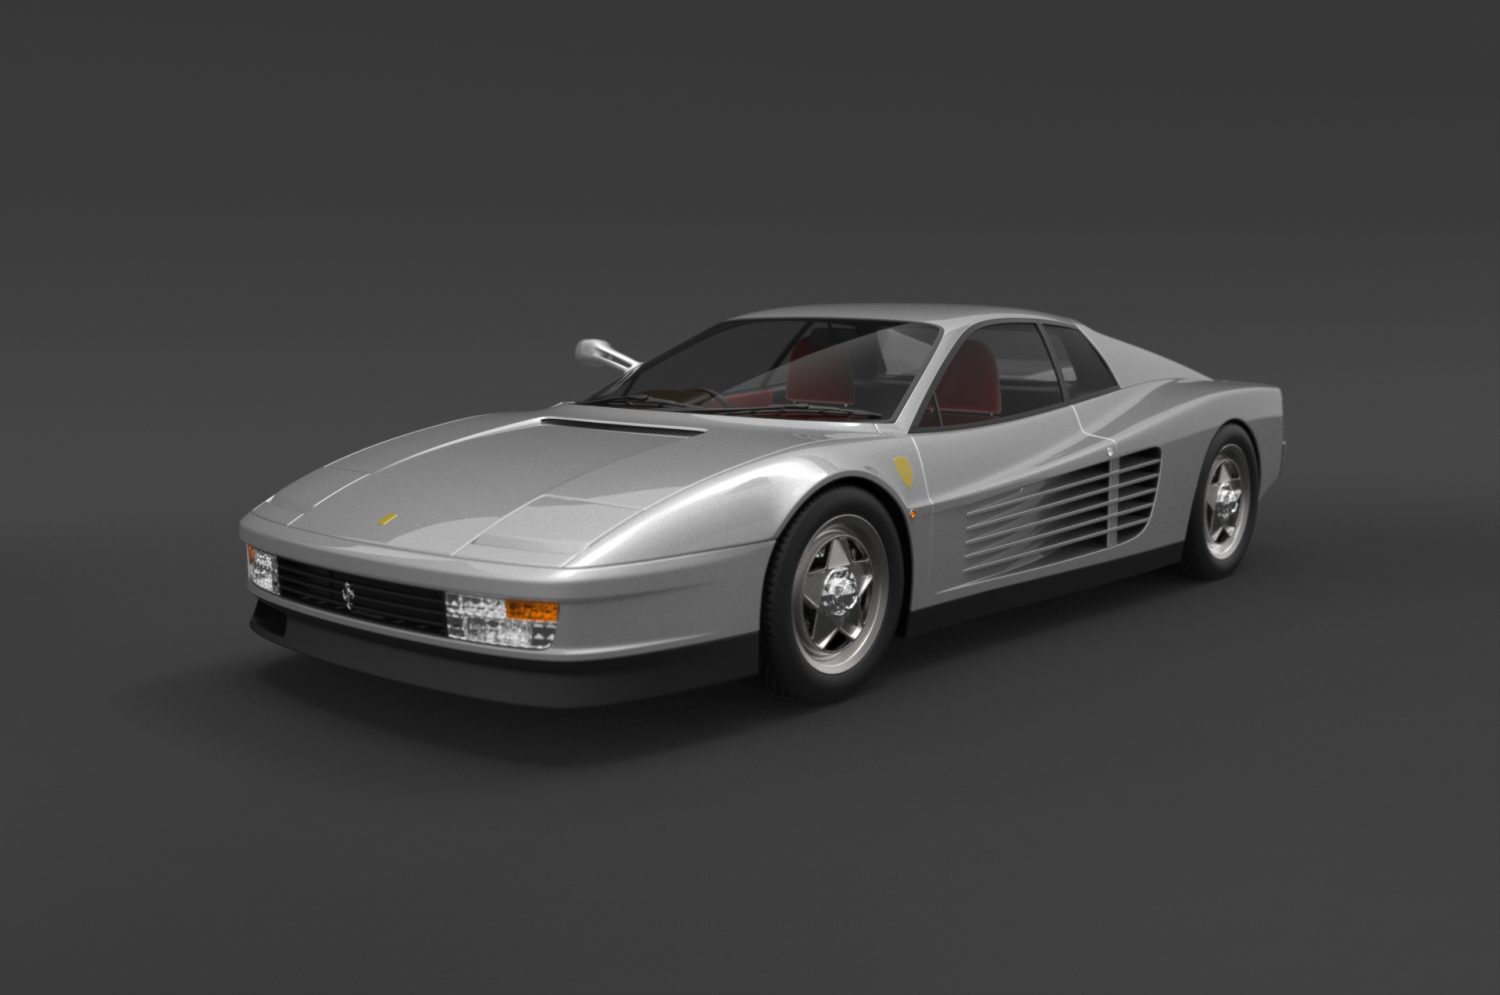 testarossa auction vice tubbs new miami crockett ferrari sale is news looking a white for and